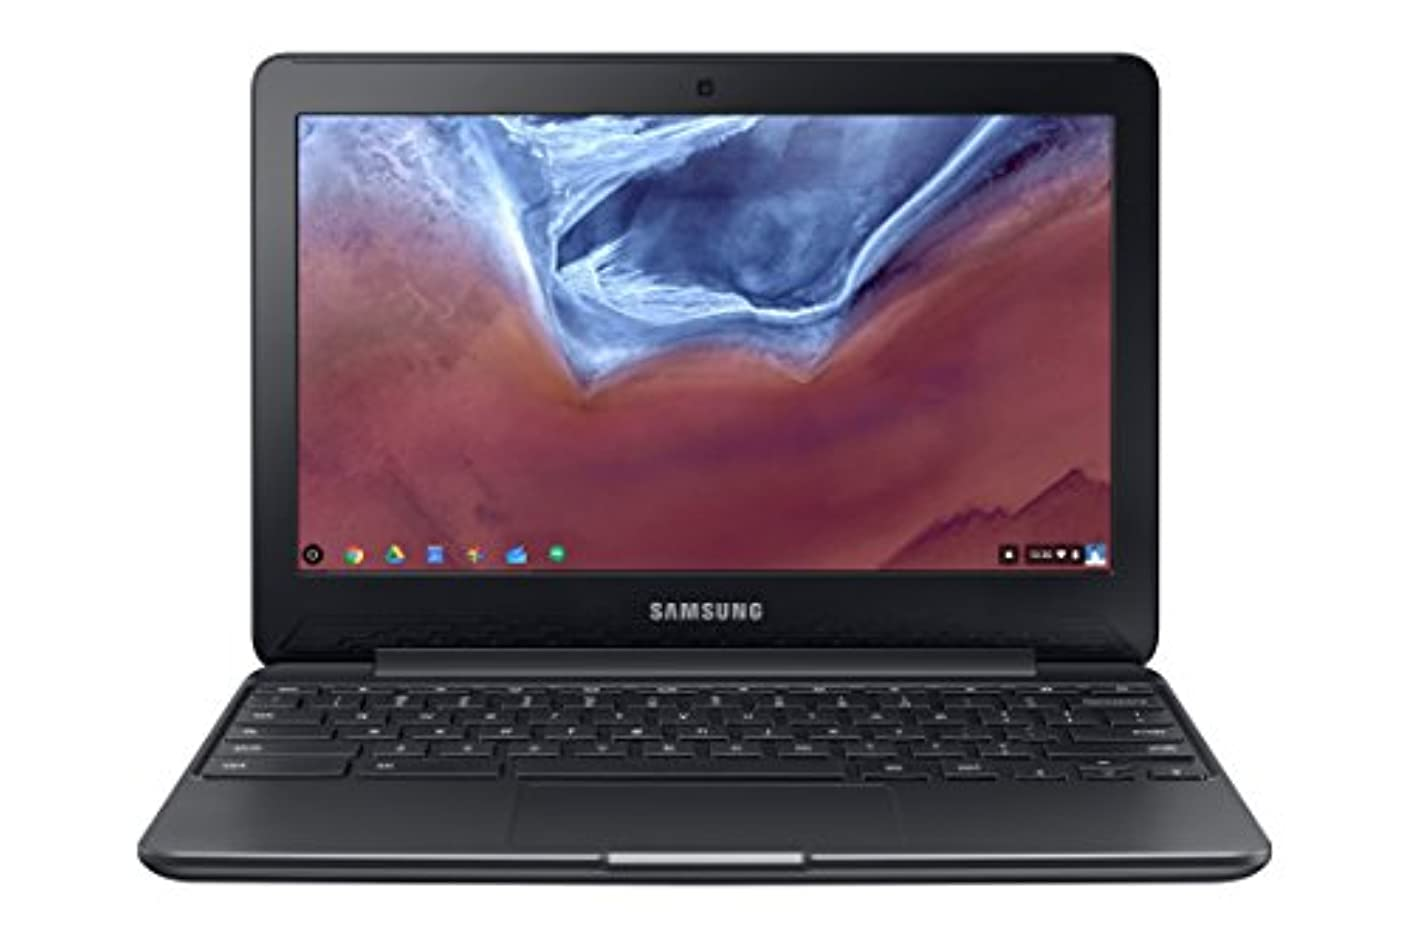 インセンティブ起きる野望SAMSUNG CHROMEBOOK 3 / 11.6 INCH / INTEL CELERON N3060 / 16GB / 2GB / INTEL HD G